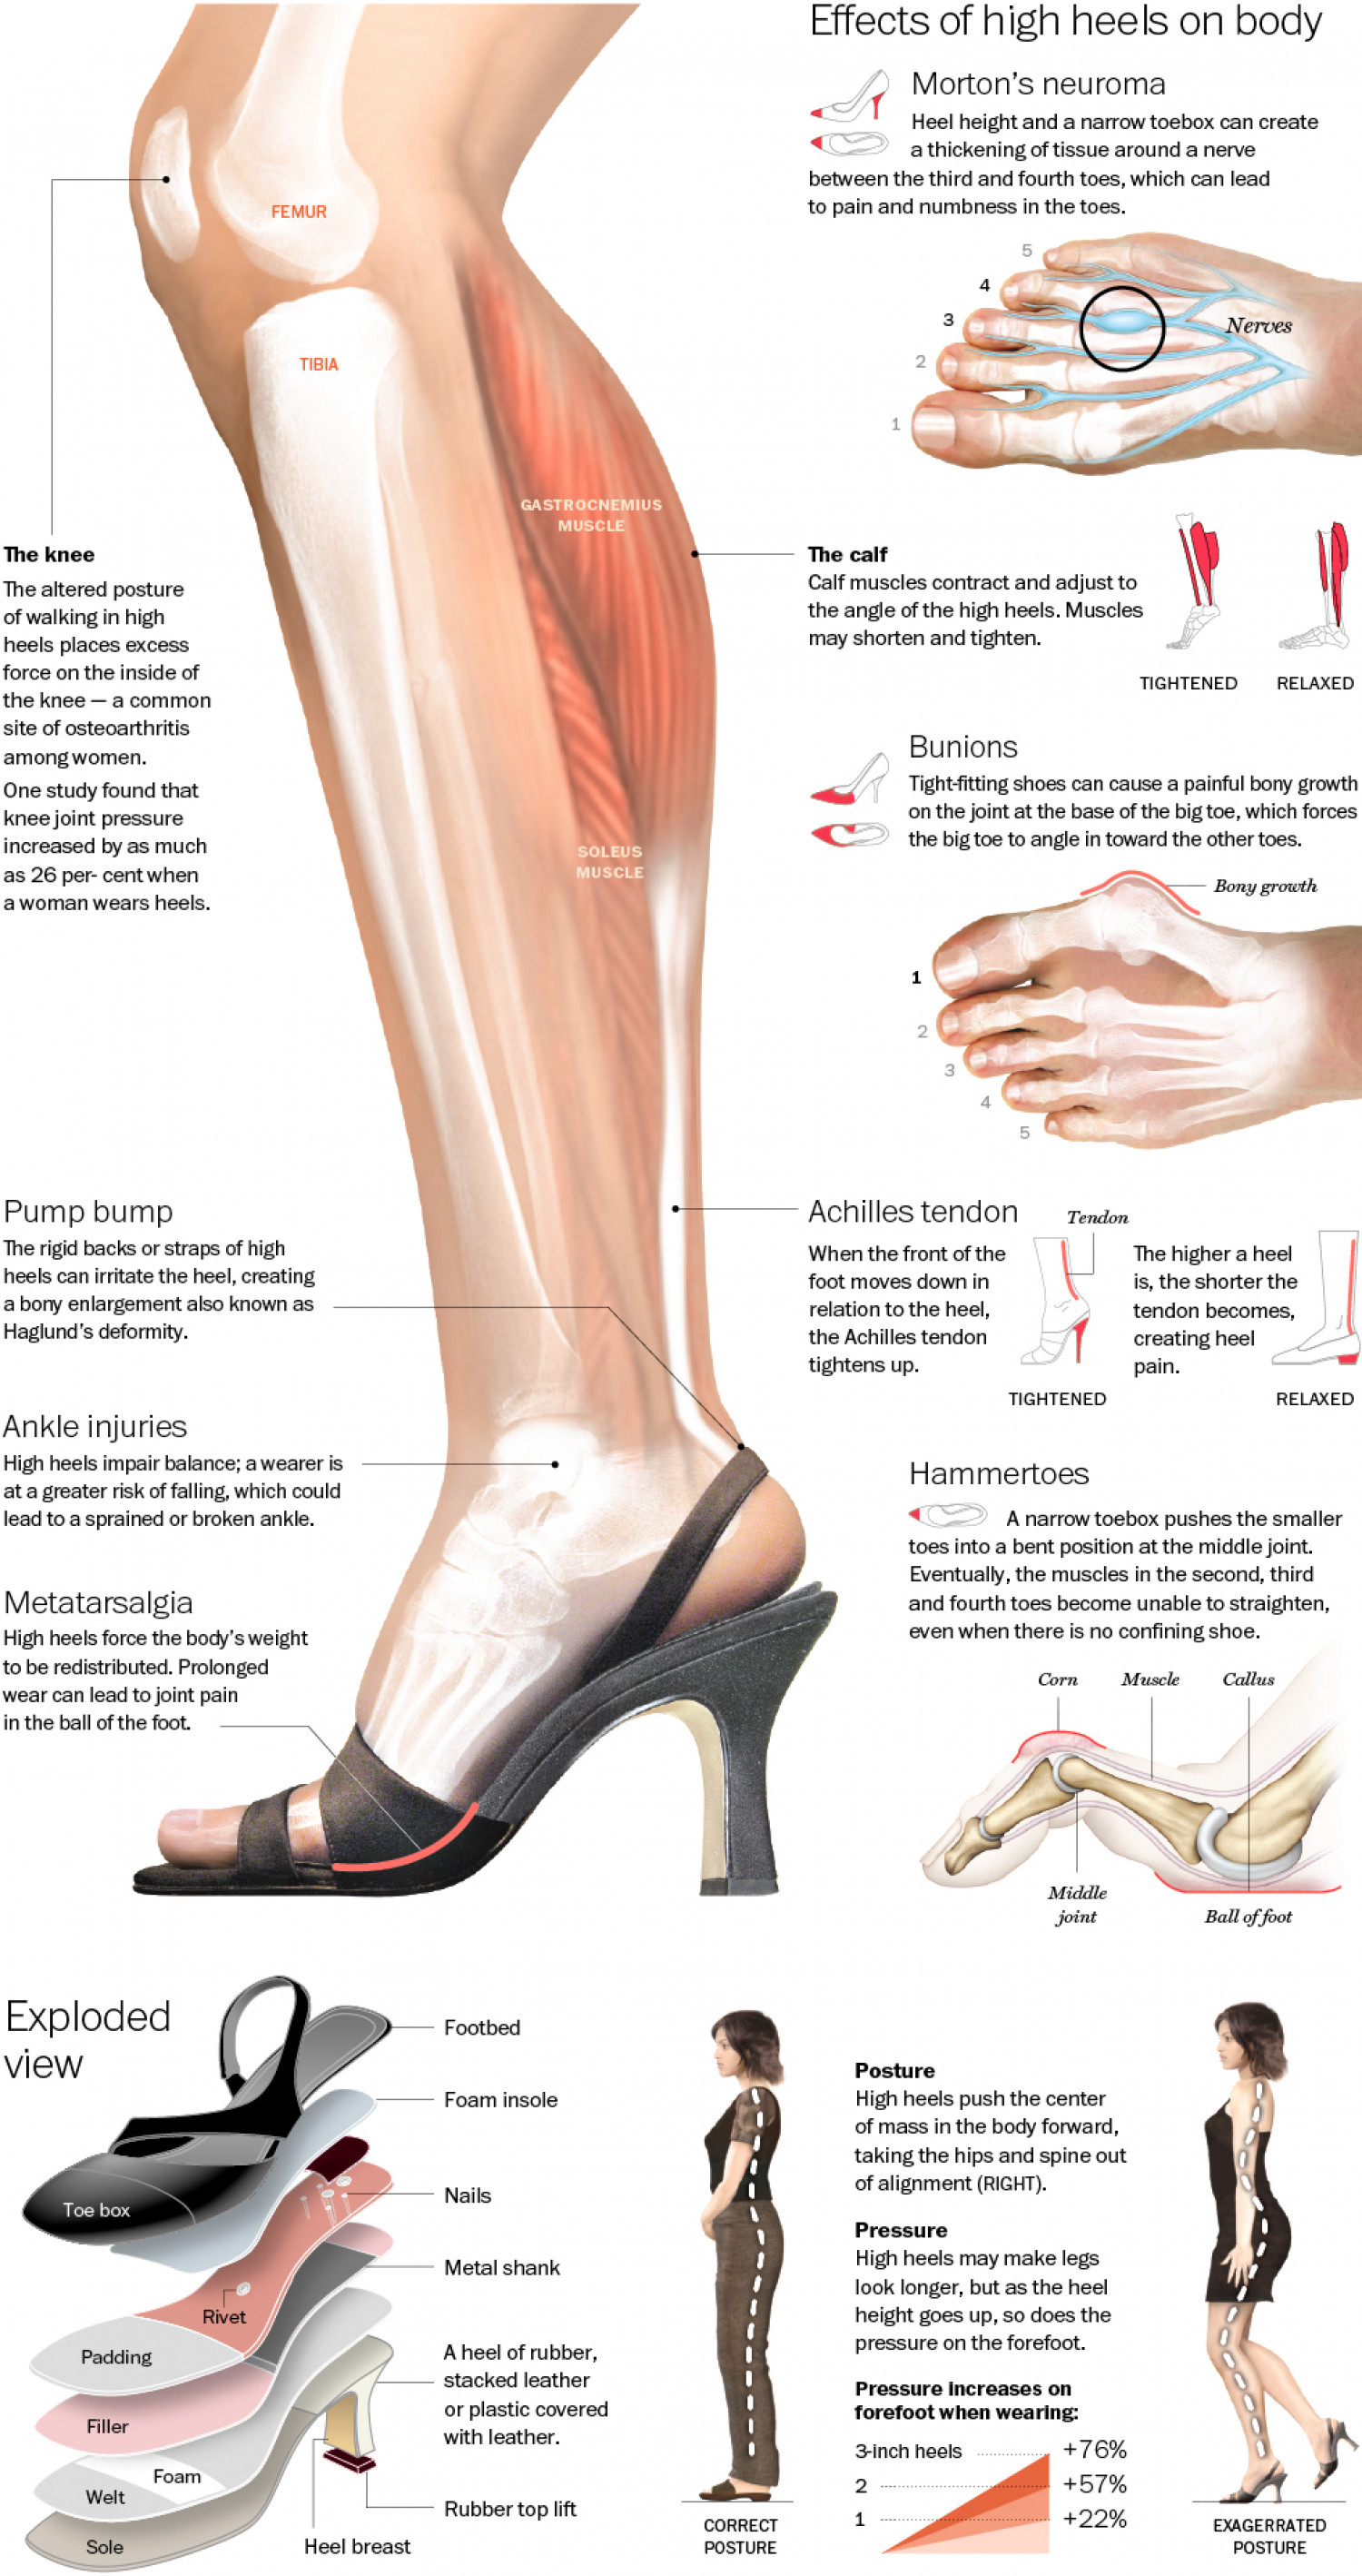 No Can Foot Leg And PainGainHigh Lead To A Injuries Heels Dozen OPkZiuwXTl